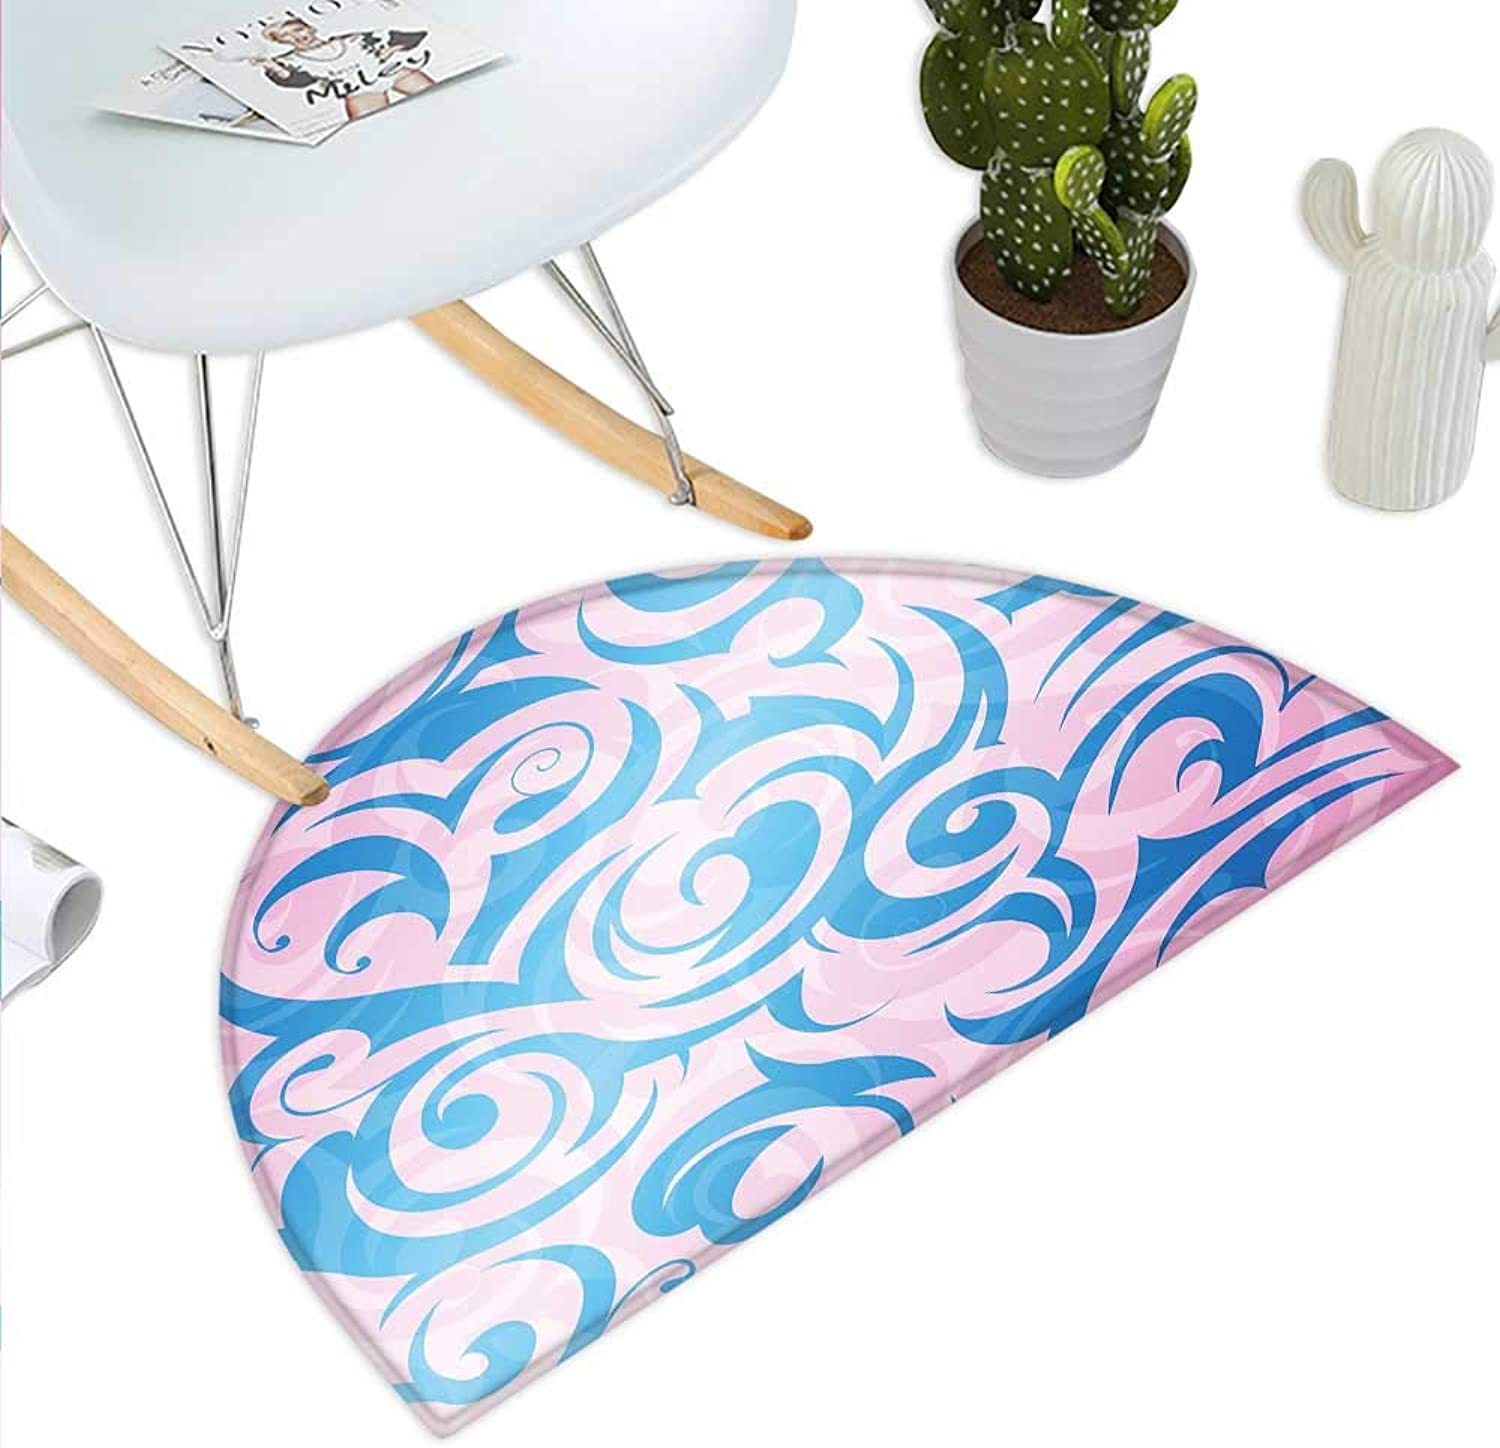 Navy and bluesh Semicircle Doormat Abstract Pattern with Tribal Curls Artistic Floral Curves Swirls Halfmoon doormats H 31.5  xD 47.2  Pale bluee Pale Pink